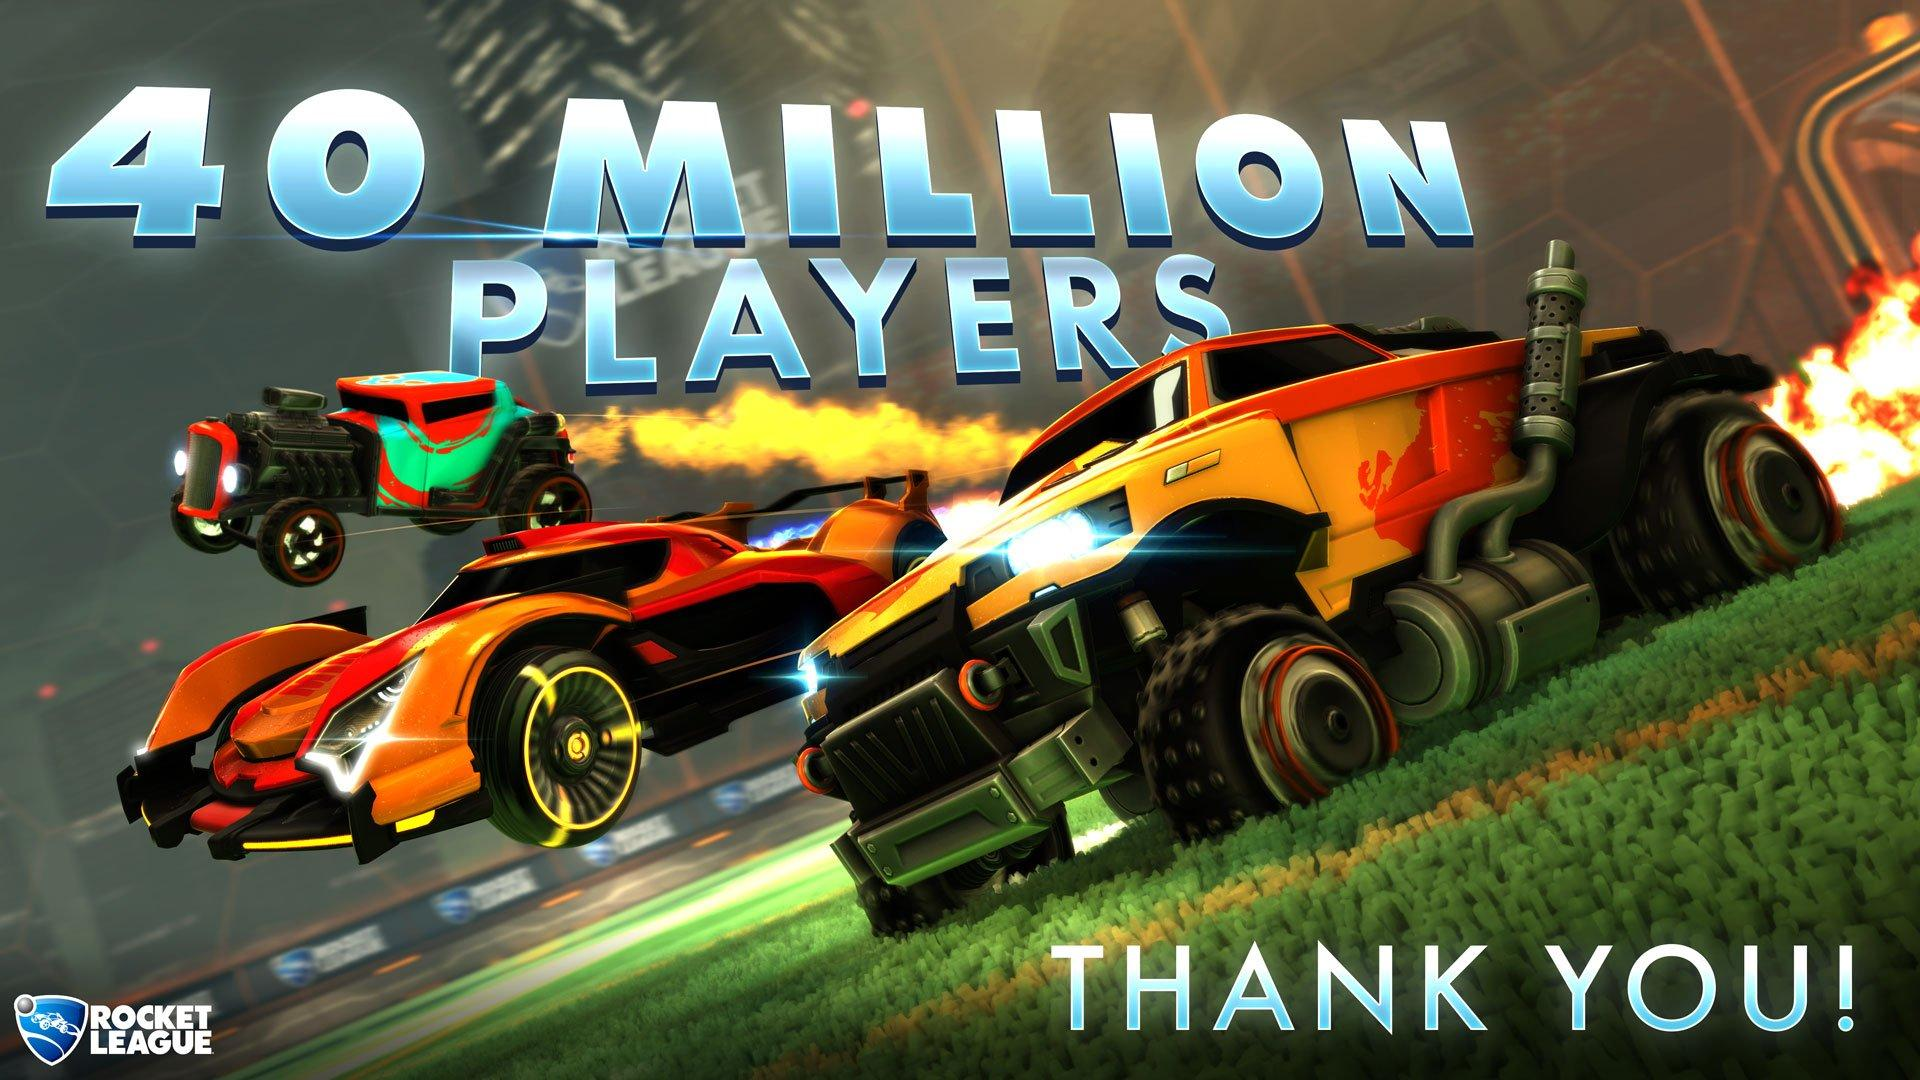 Rocket League Has Officially Crossed the 40 Million Player Count Mark